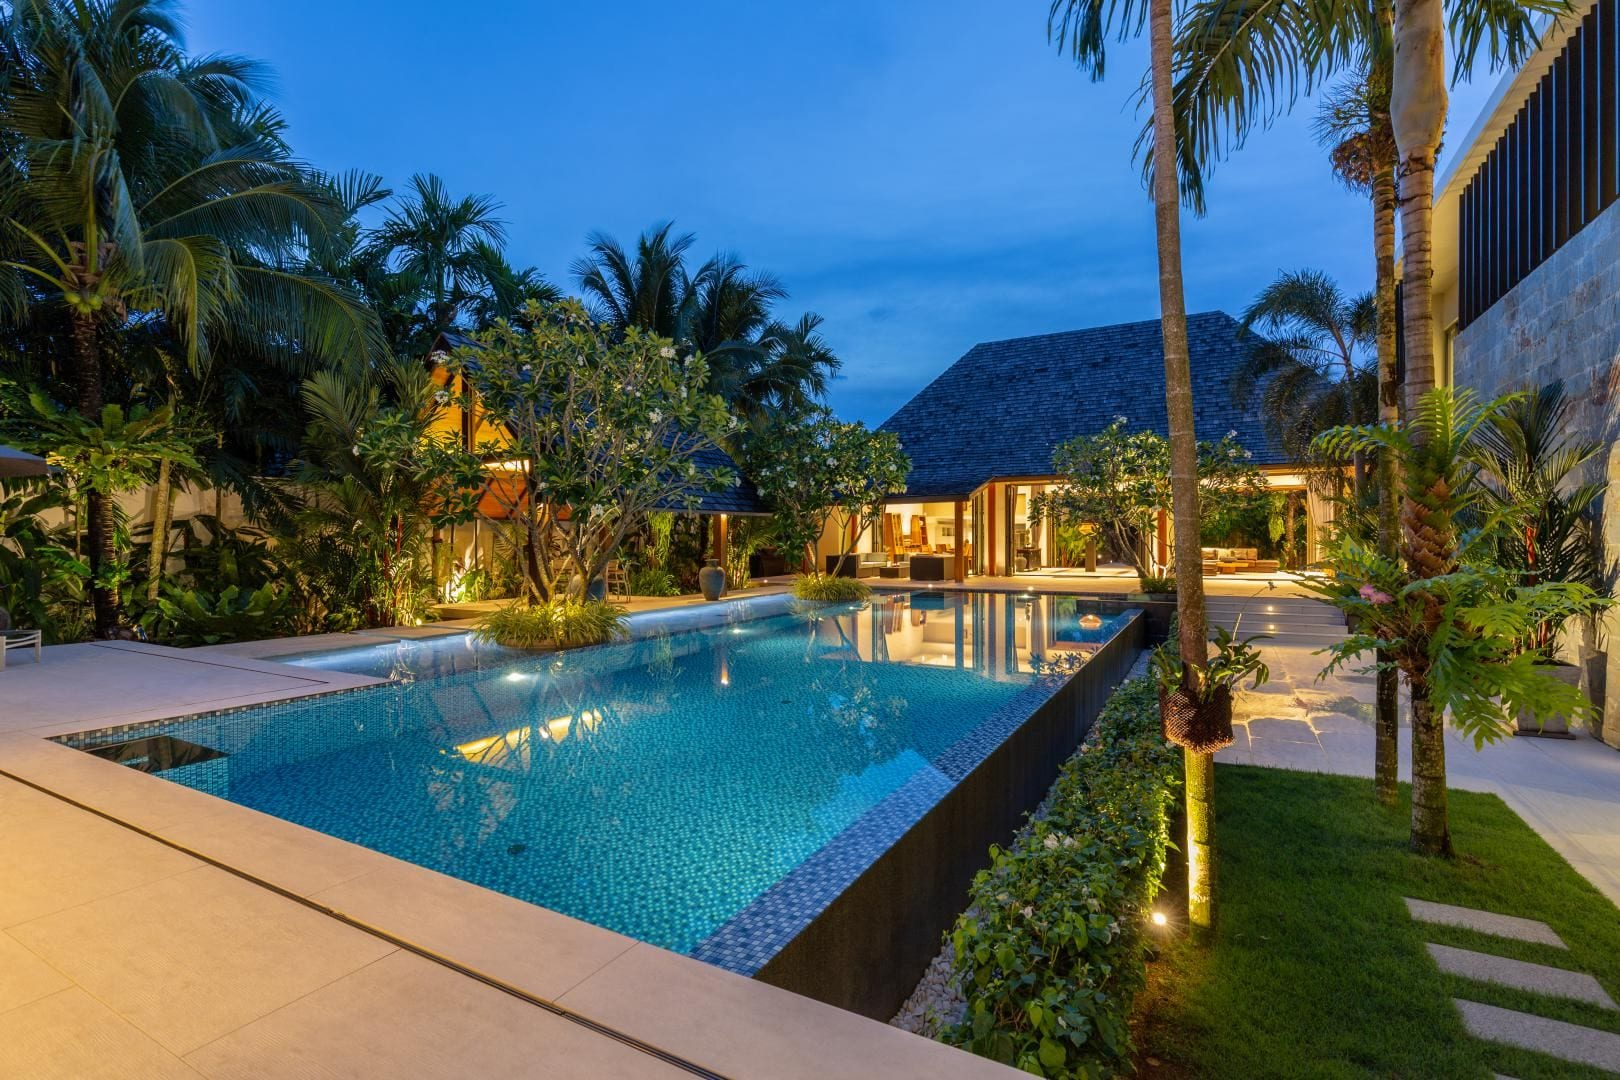 7 Bedroom Luxury Villa Residence for Sale, Layan